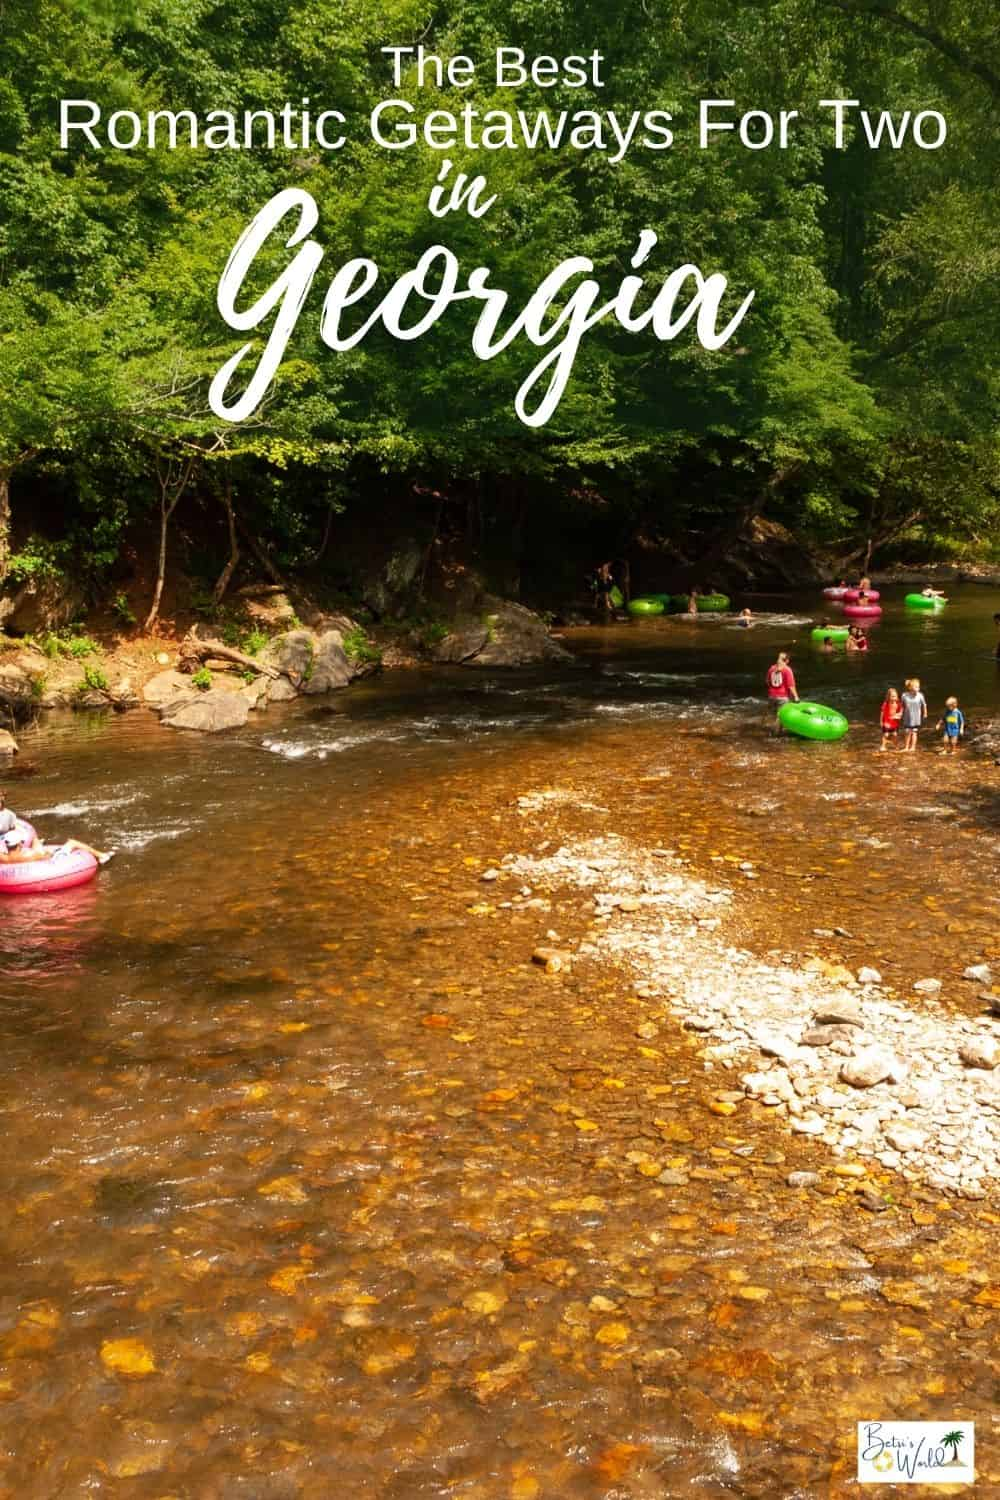 Some of the South's most romantic getaways are just a short drive away in Georgia. Whether you love history, food, hiking, or the beach, a romantic weekend getaway to Georgia is a perfect choice!